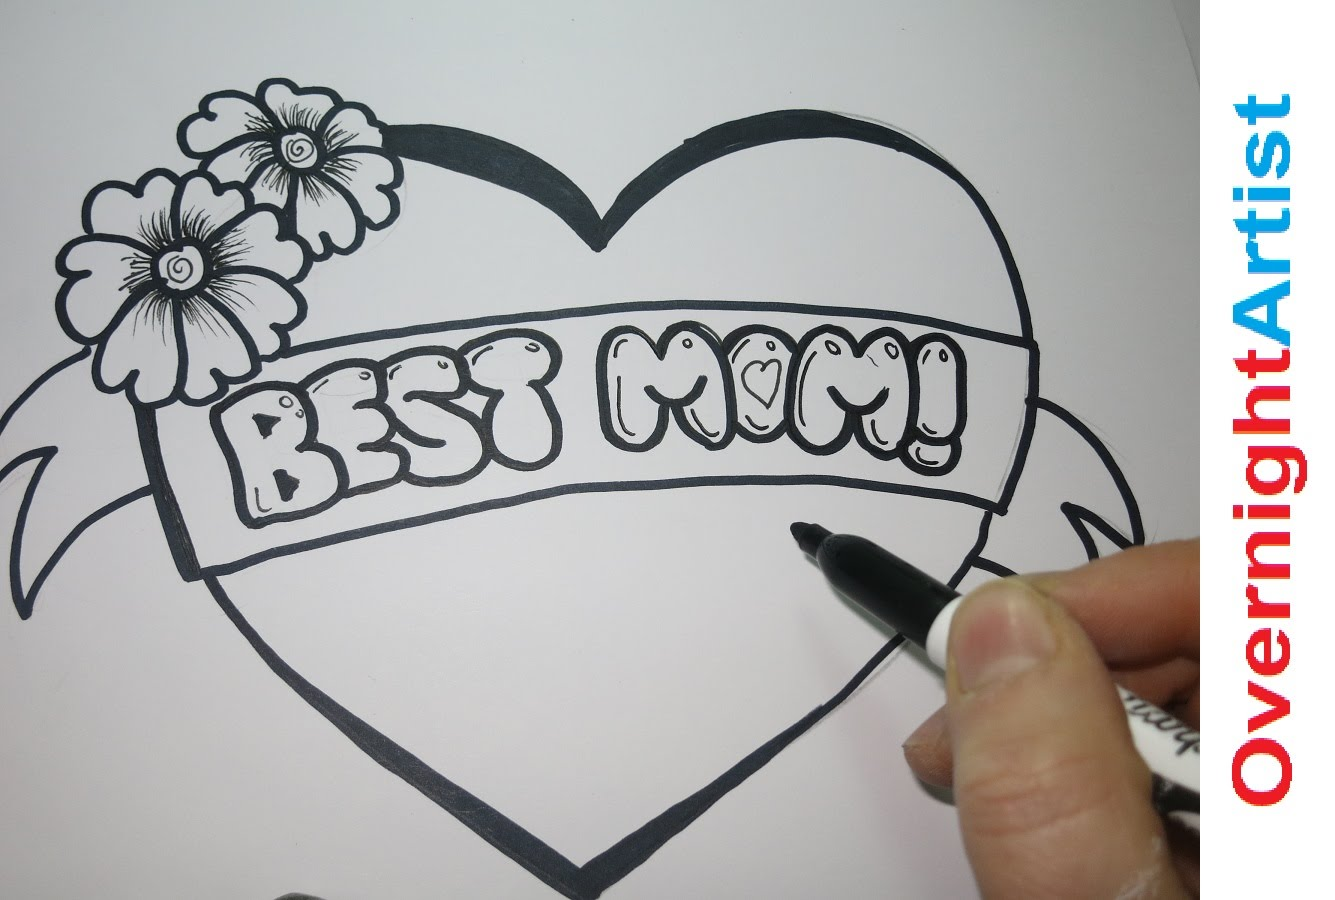 drawing ideas for mom's birthday ; maxresdefault